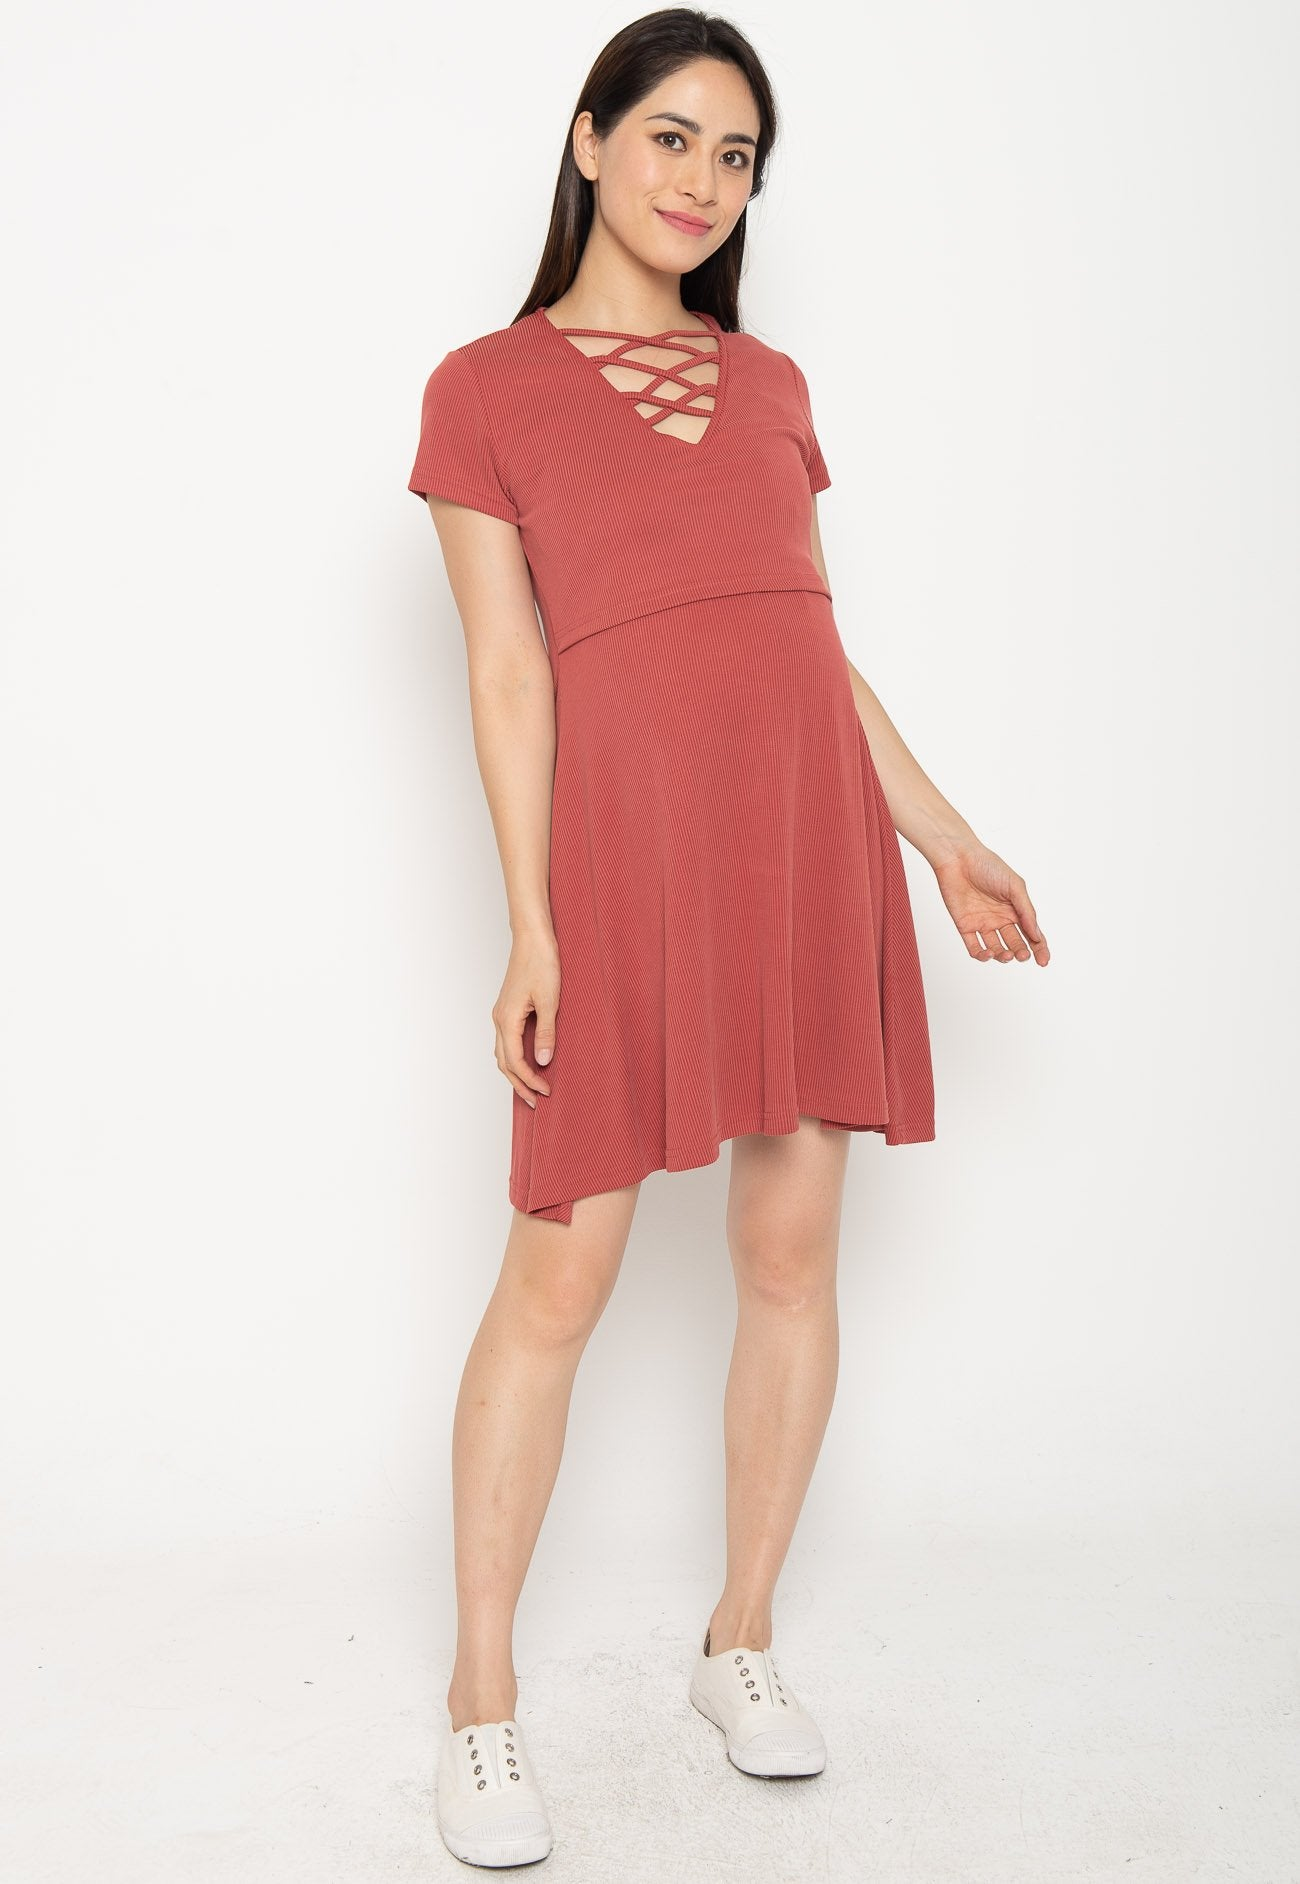 Mothercot Ambar Crisscross Nursing Dress in Red  by JumpEatCry - Maternity and nursing wear